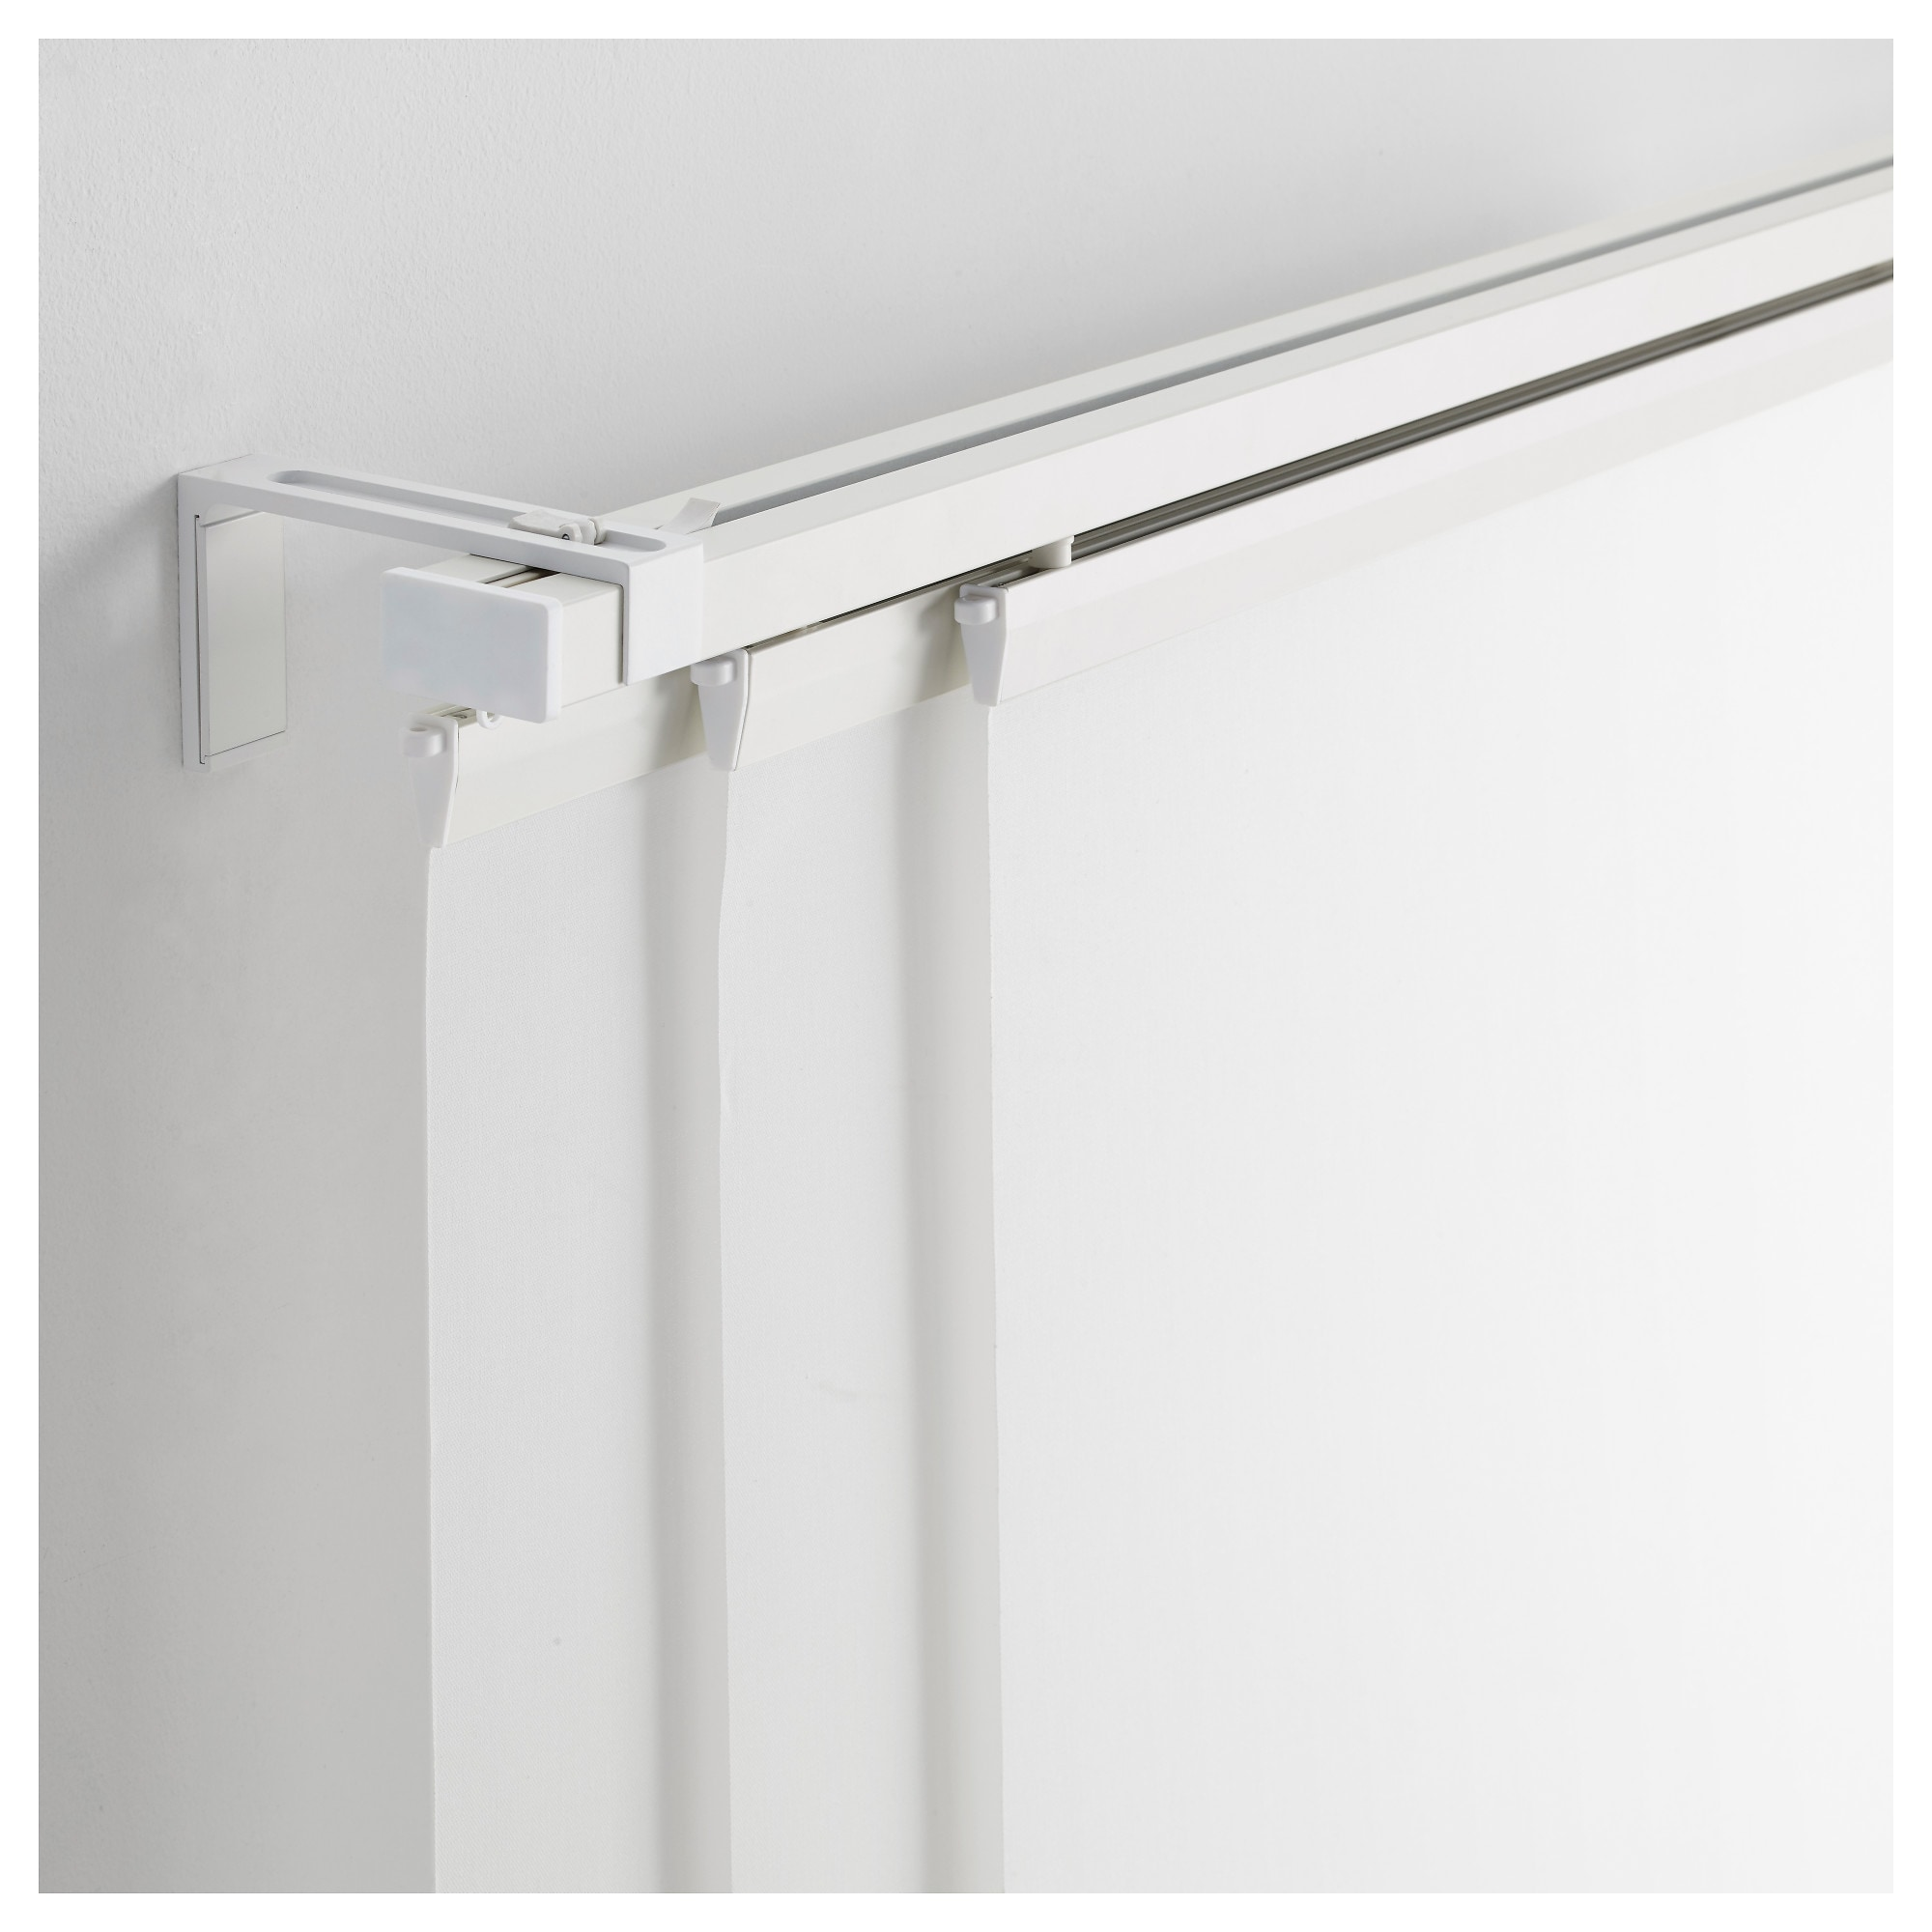 Curtain Rods & Rails - IKEA